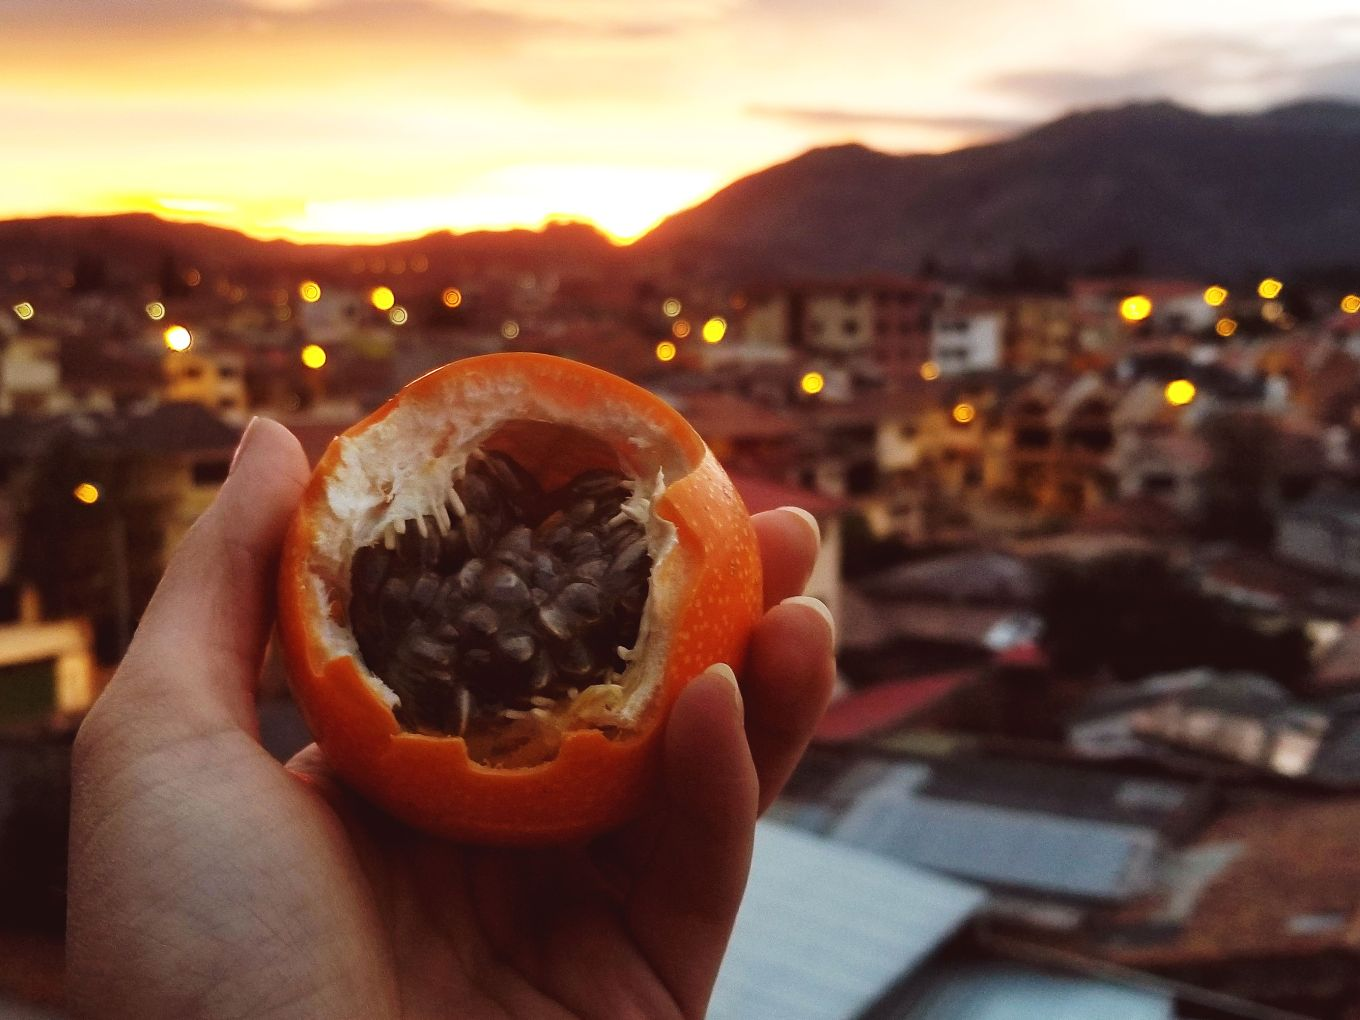 Granadilla Seeds And Sunset Cuenca, Ecuador